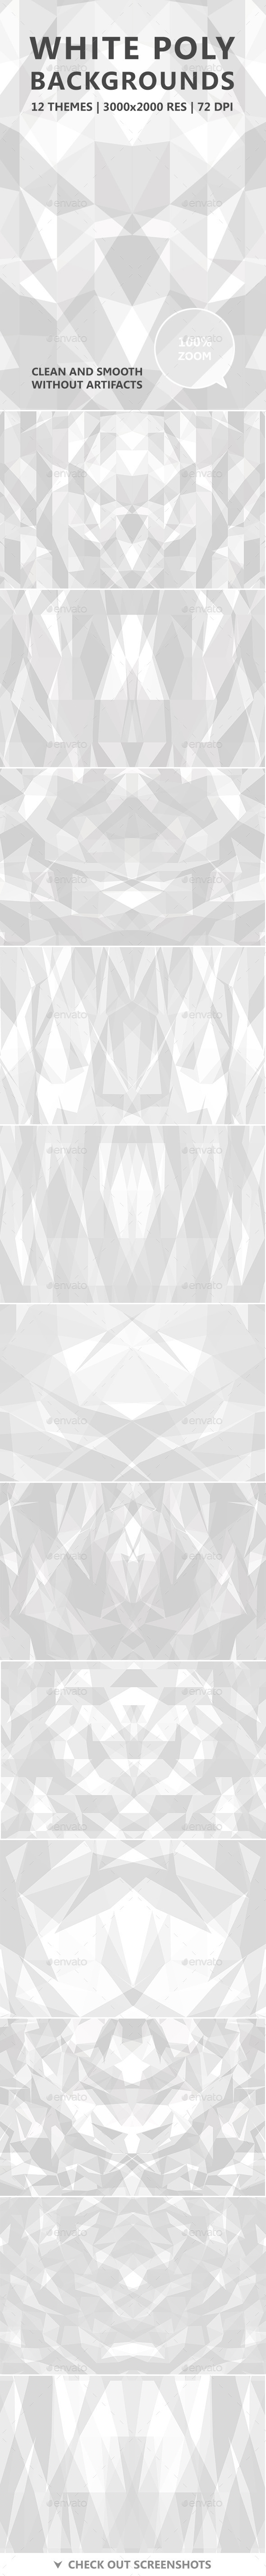 White Poly Backgrounds - Abstract Backgrounds